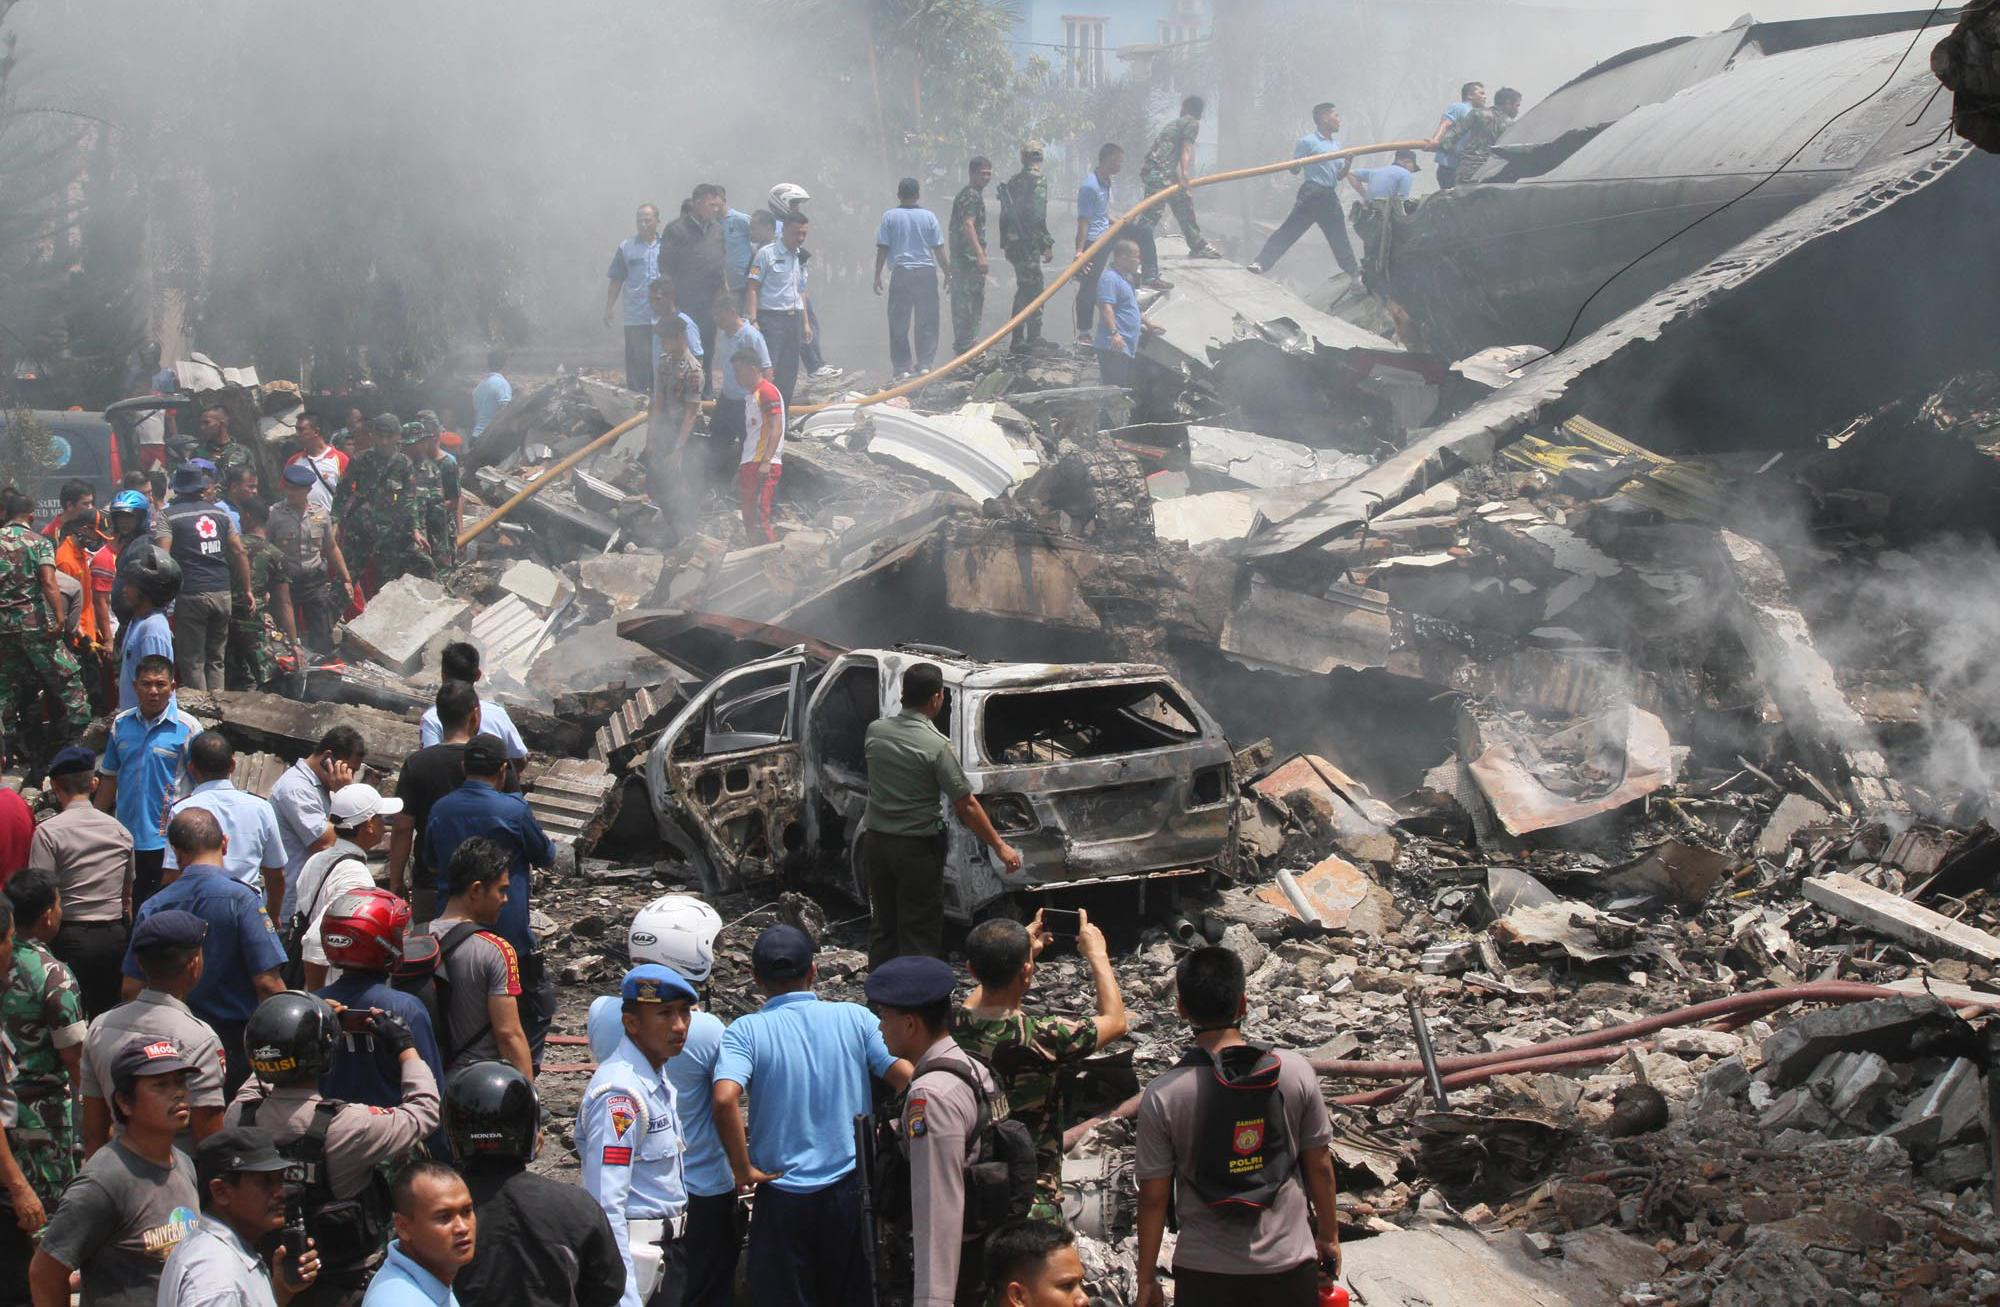 Indonesia military transport plane crashes in Medan; 37 dead